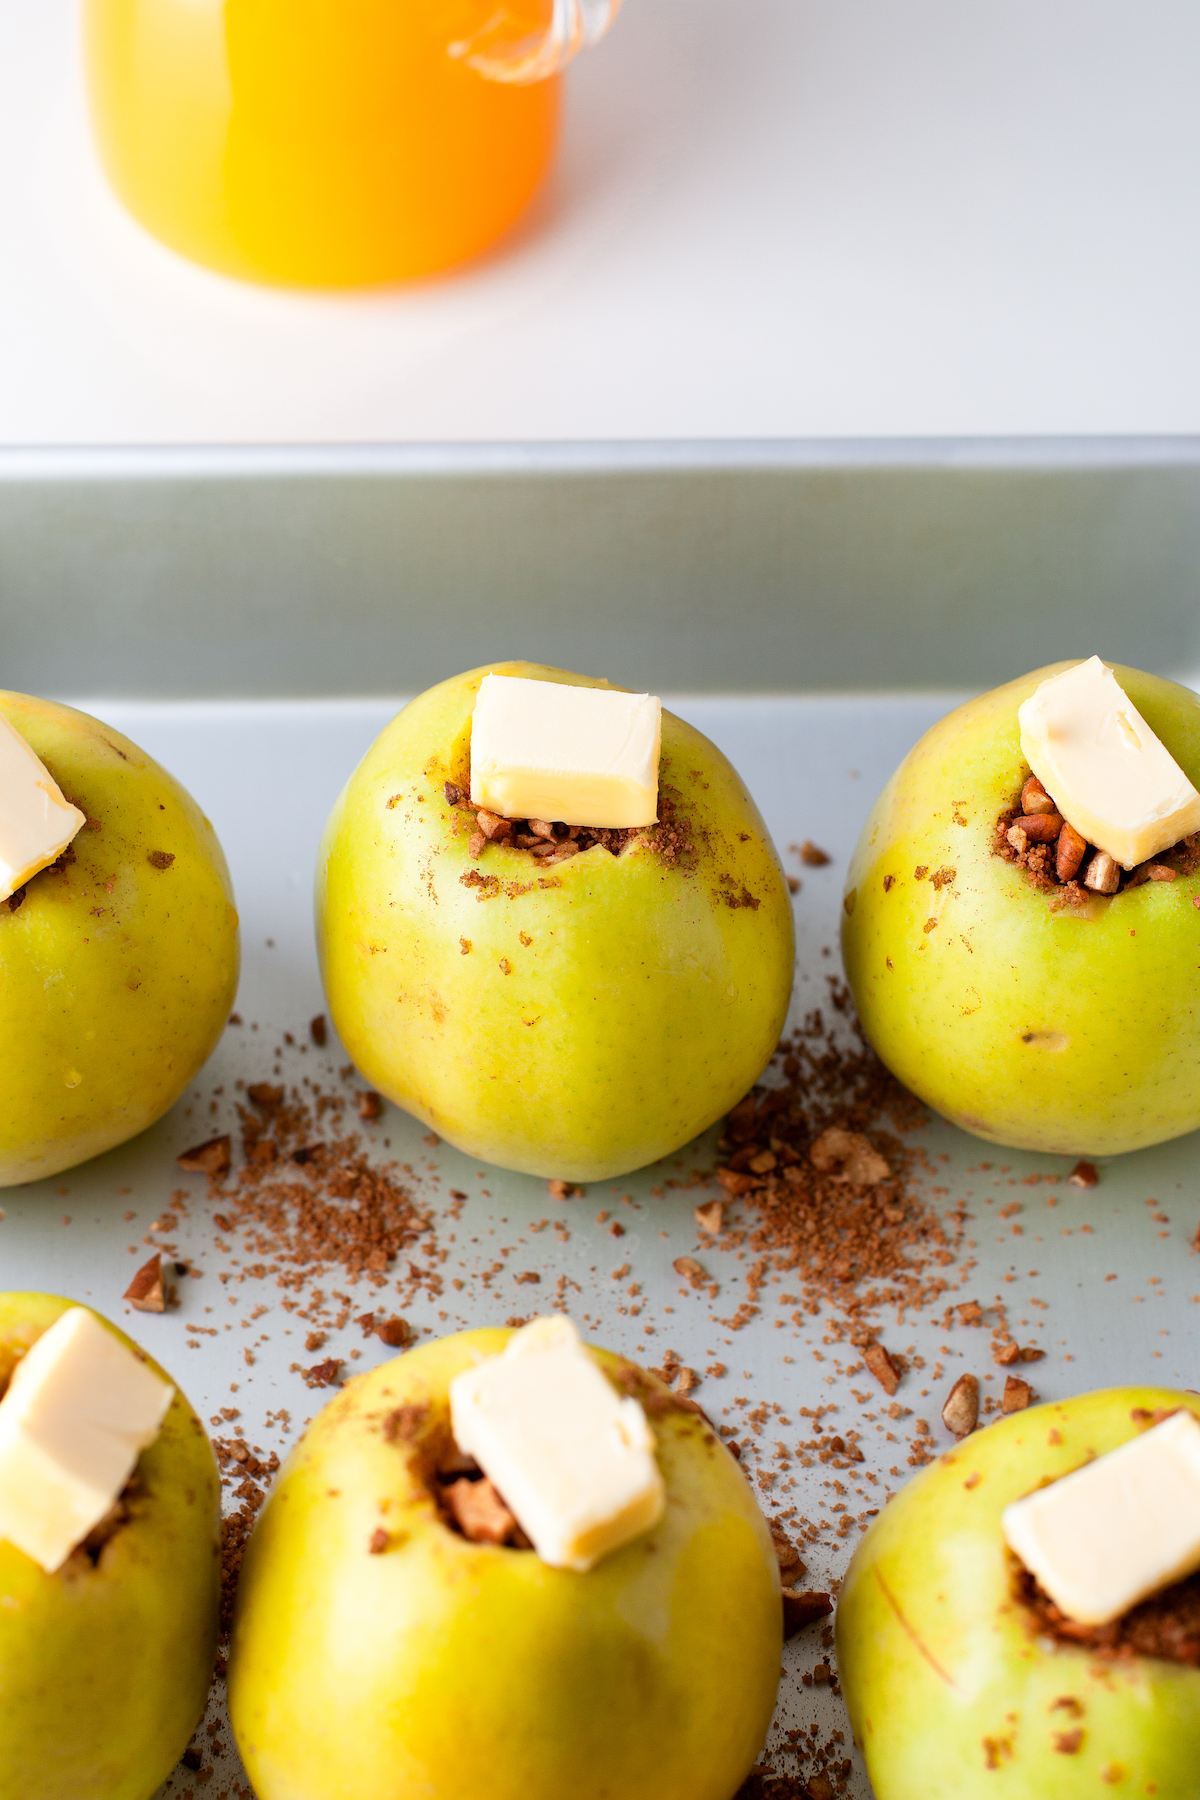 Stuffed apples with a pad of butter on top.